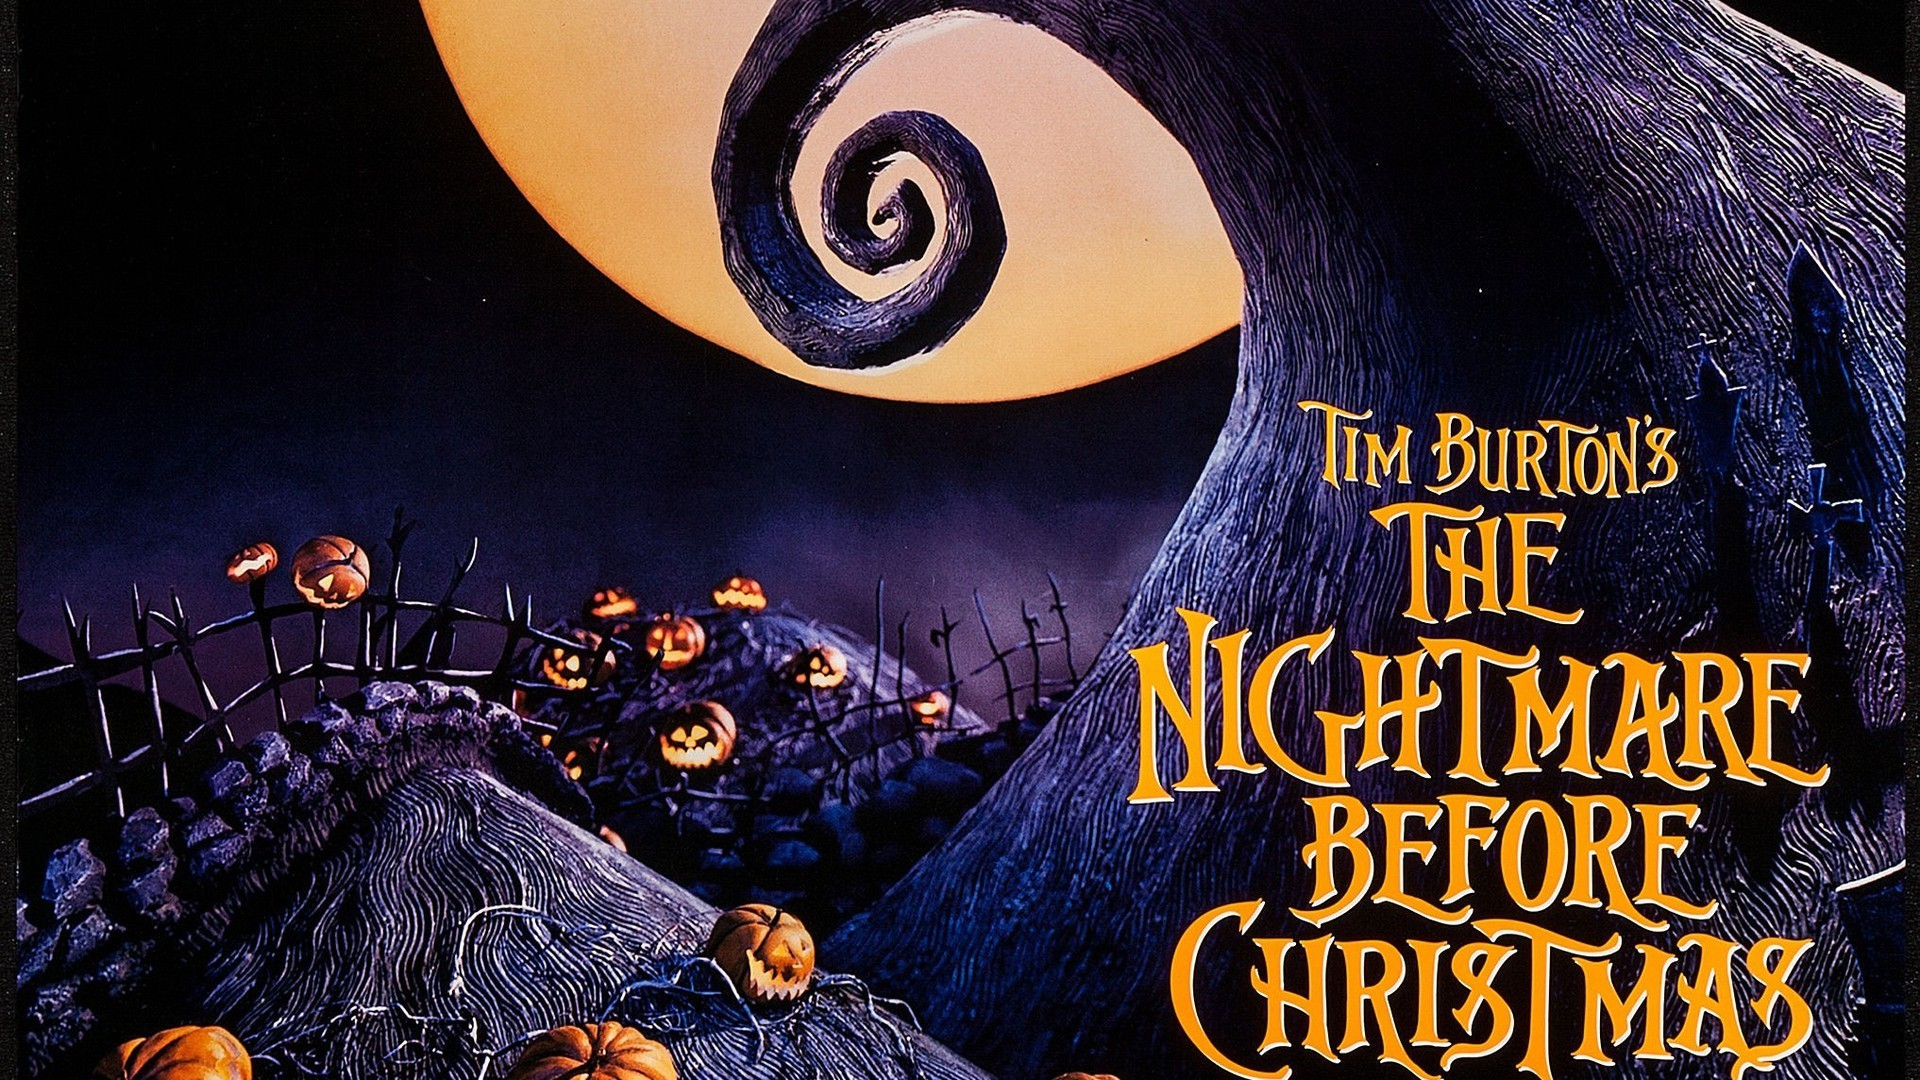 The Night Before Christmas Wallpaper (69+ images)